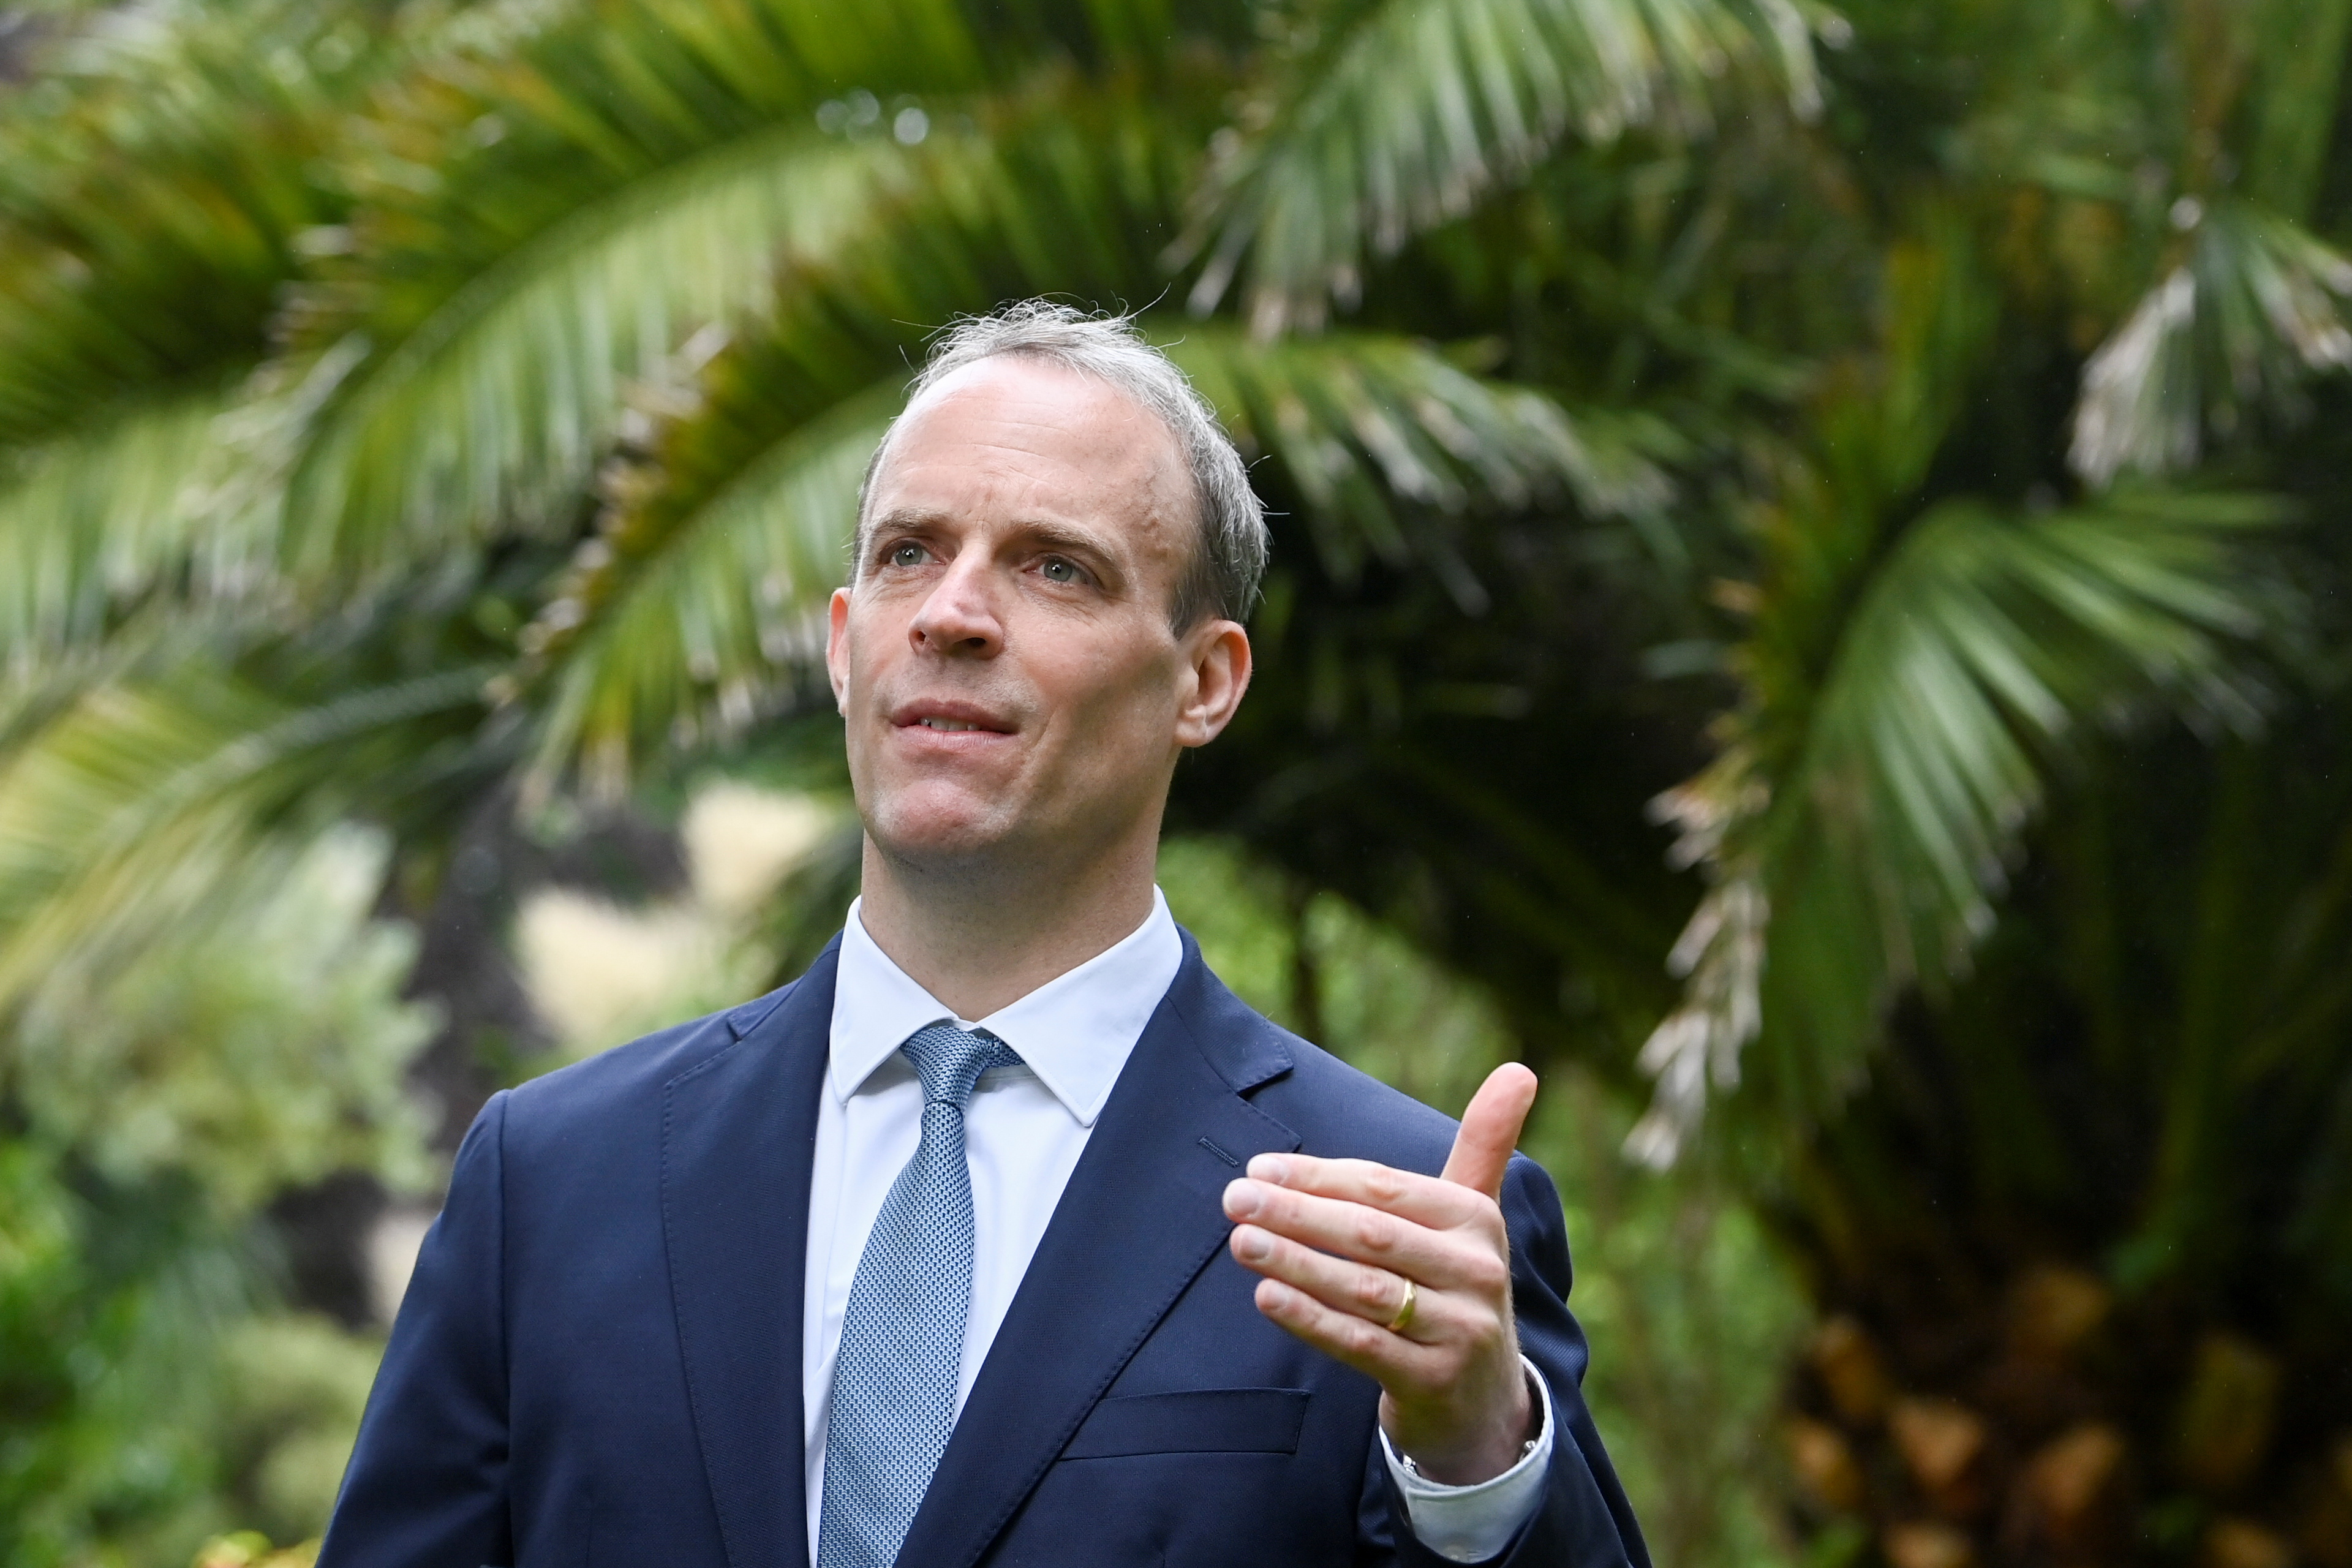 Britain's Foreign Secretary Dominic Raab gestures during an interview with Reuters on the sidelines of G7 summit in Carbis Bay, Cornwall, Britain, June 11, 2021. REUTERS/Toby Melville